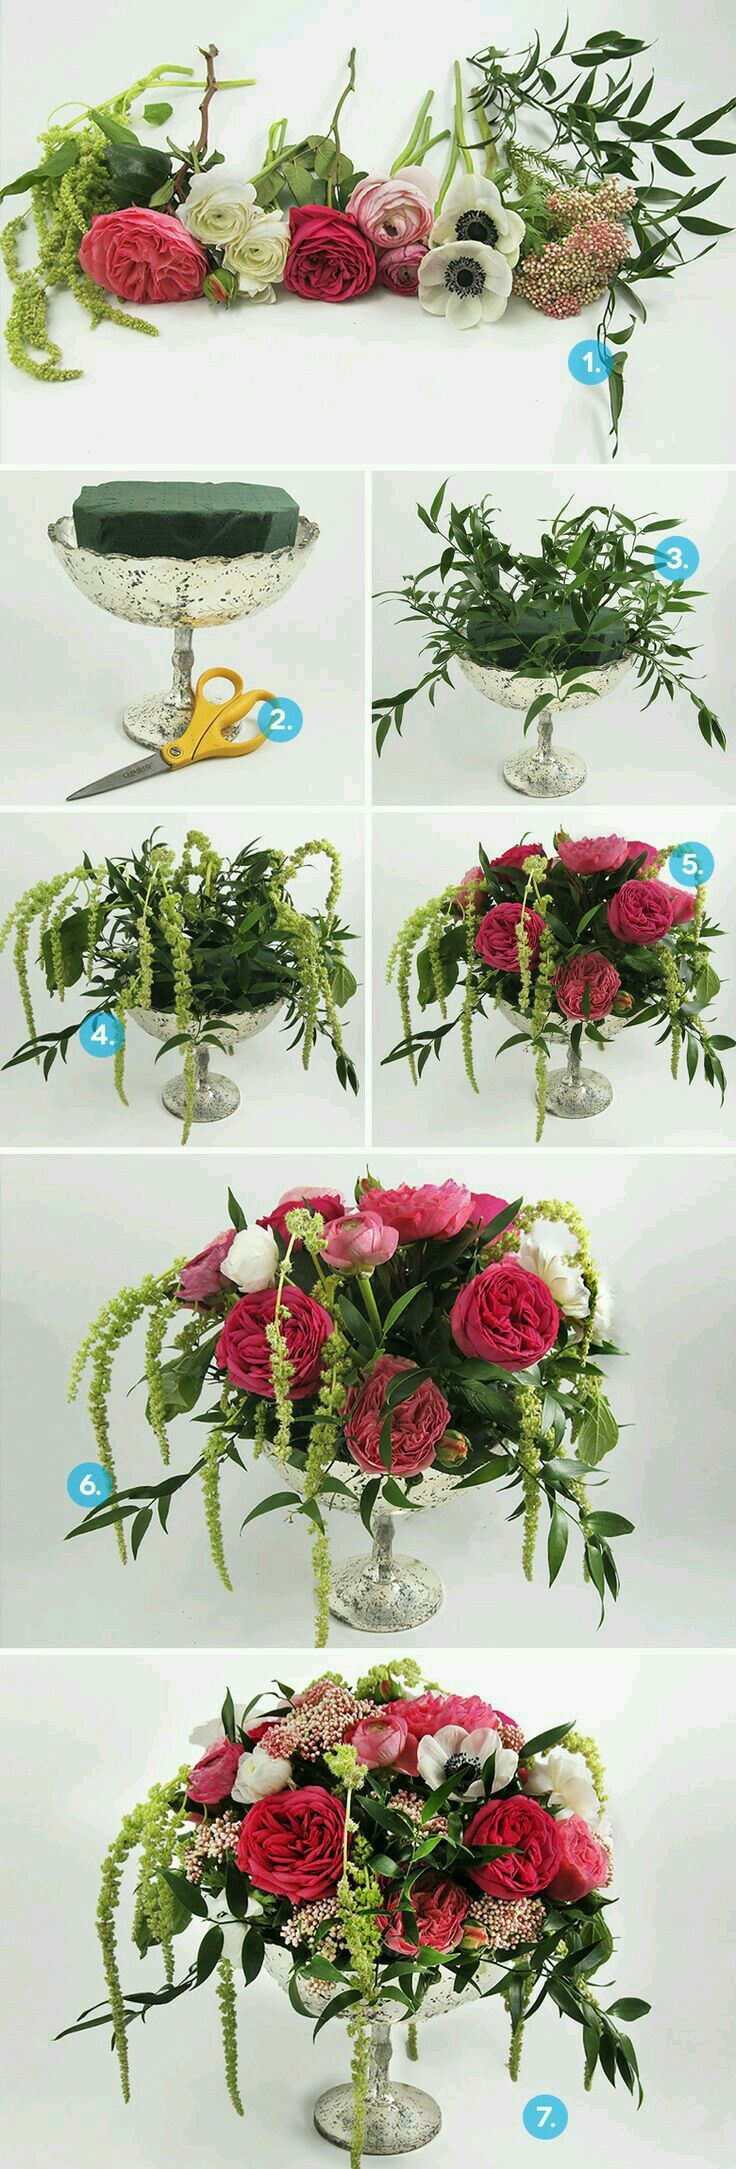 Best how to diy flower techniques images on pinterest